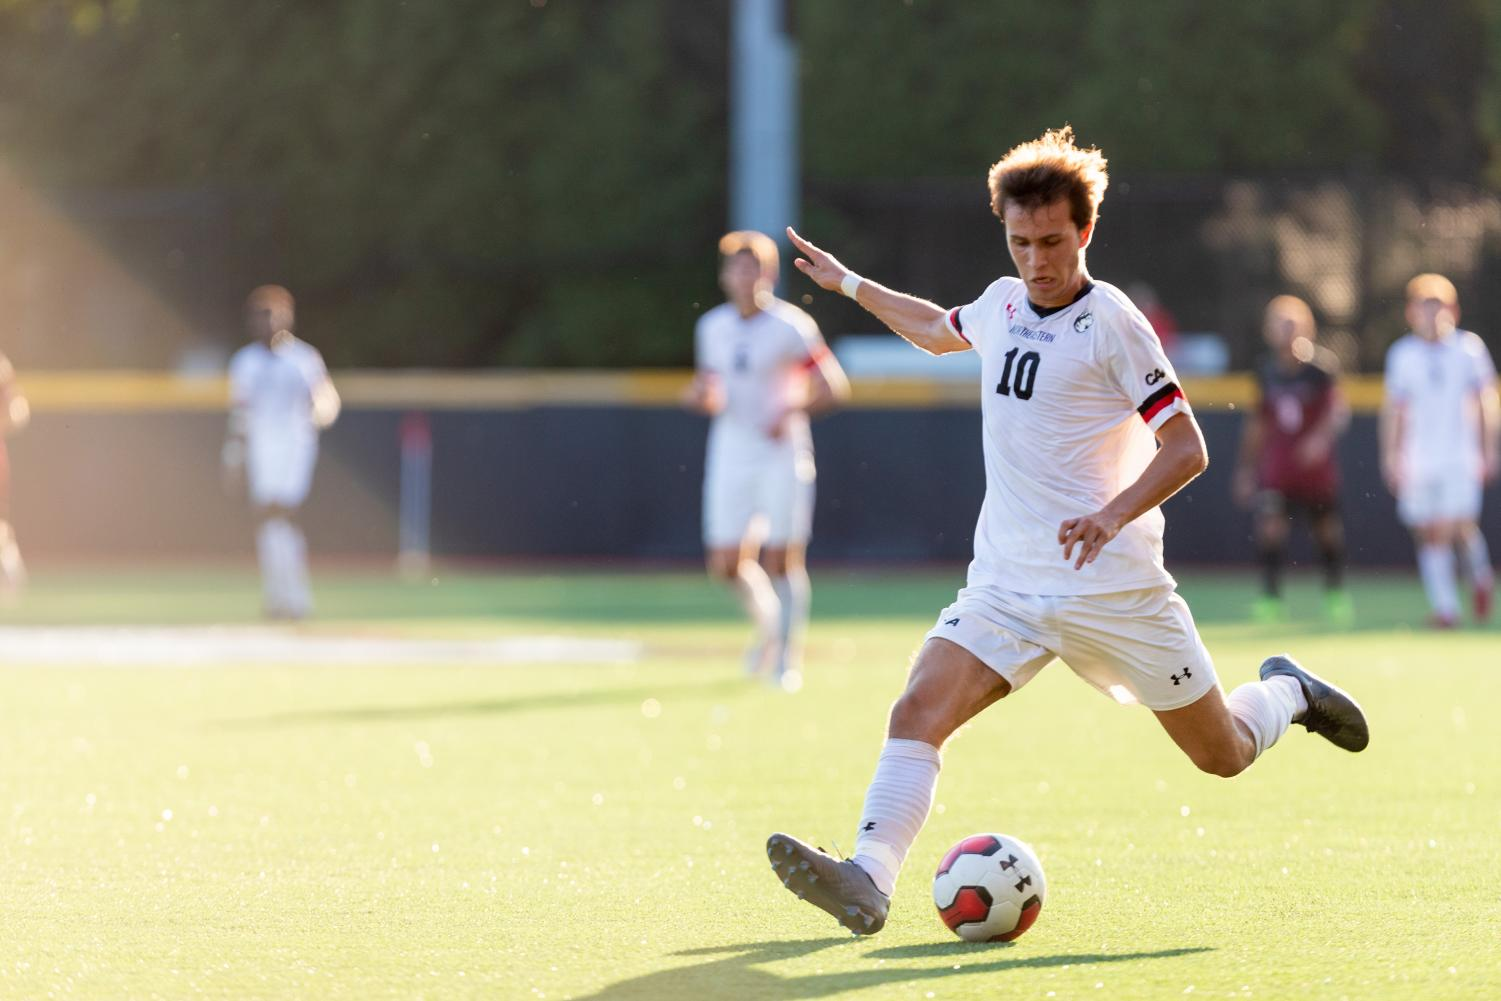 Jacob Marin-Thomson prepares to strike the ball during a match against Charleston College.